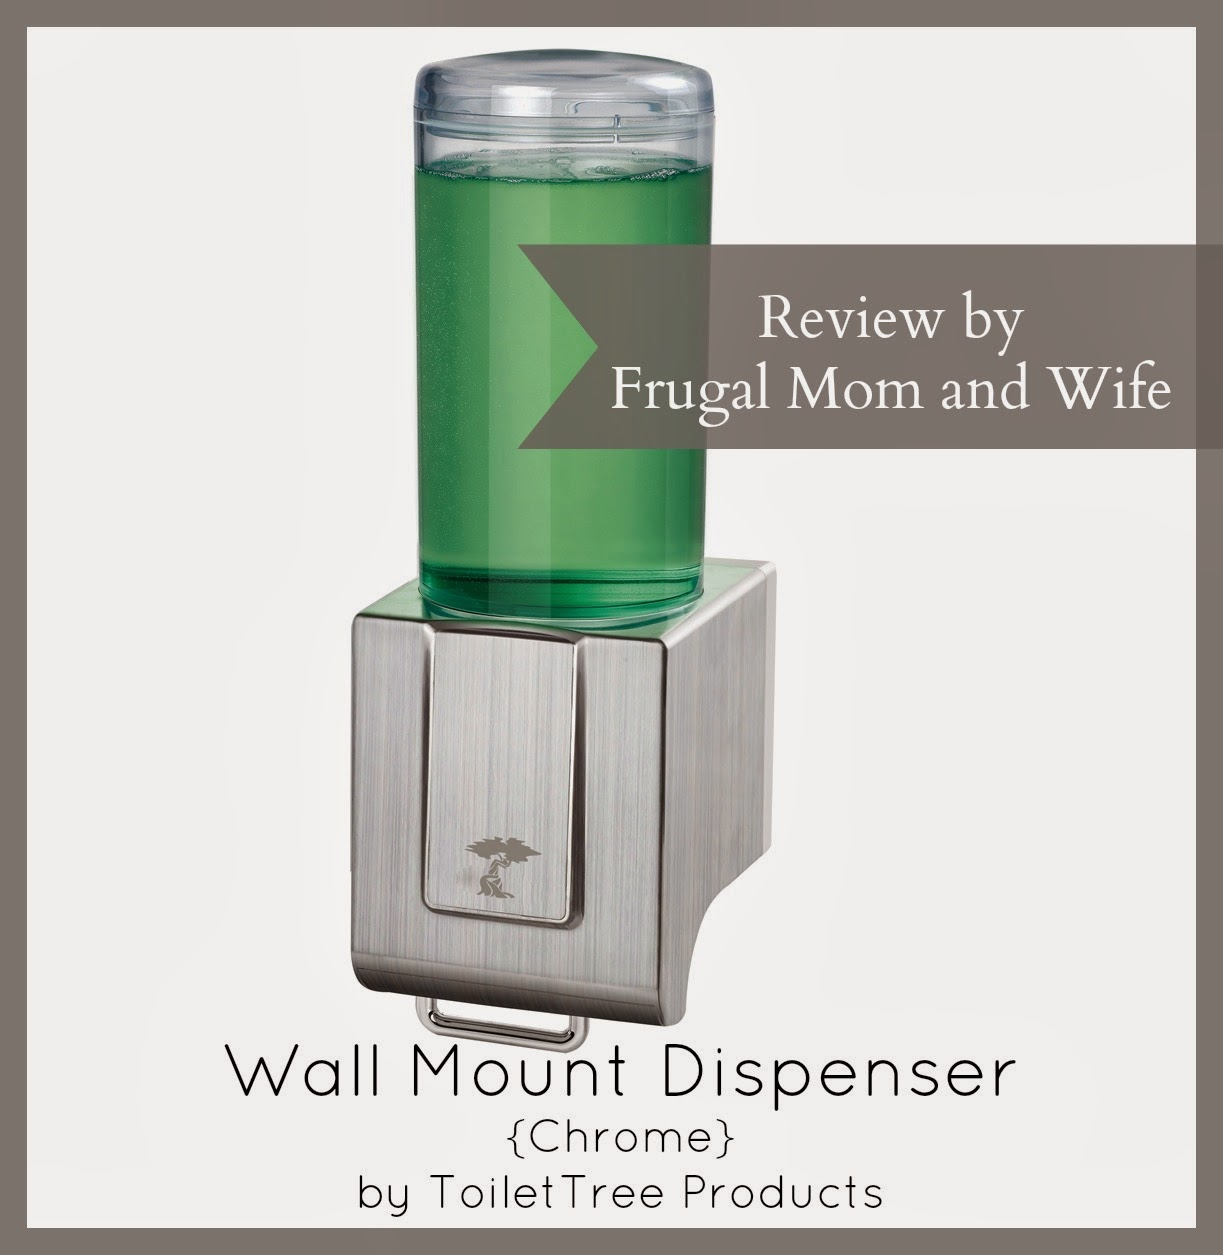 Frugal mom and wife wall mount dispenser chrome by toilettree products review - Wall mounted shampoo and conditioner dispenser ...